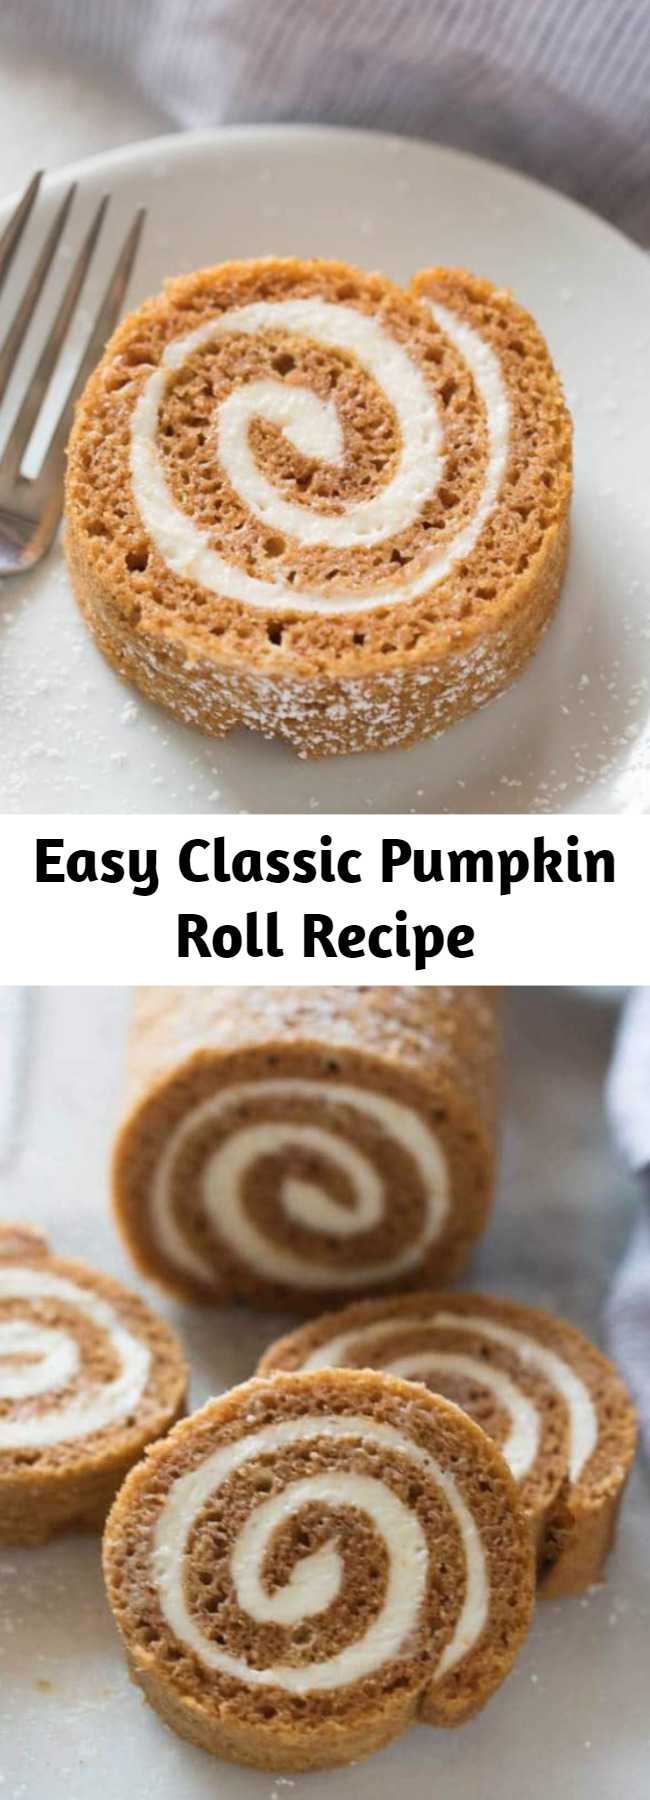 Easy Classic Pumpkin Roll Recipe - I've got one simple trick that makes this classic Pumpkin Roll recipe EASY and mess-free! This classic pumpkin roll recipe is made with a delicious pumpkin cake, rolled up with a fluffy cream cheese filling. It has the best soft texture and flavor with a delicious cream cheese filling.  Always a crowd favorite, and easier than ever to make!